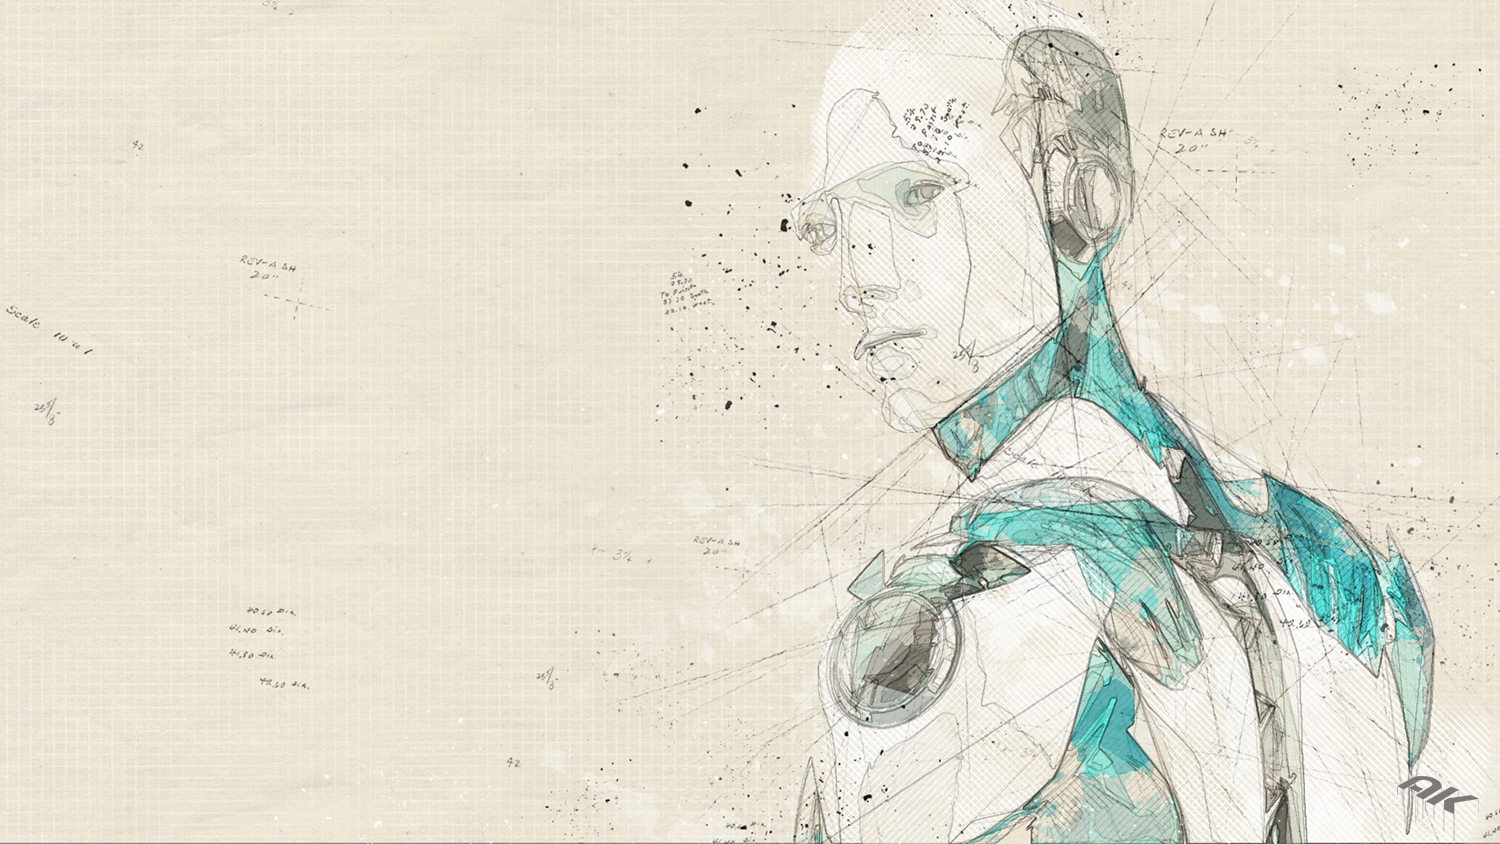 cyborg-robot-drawing-17-copyright-andrew-knutt